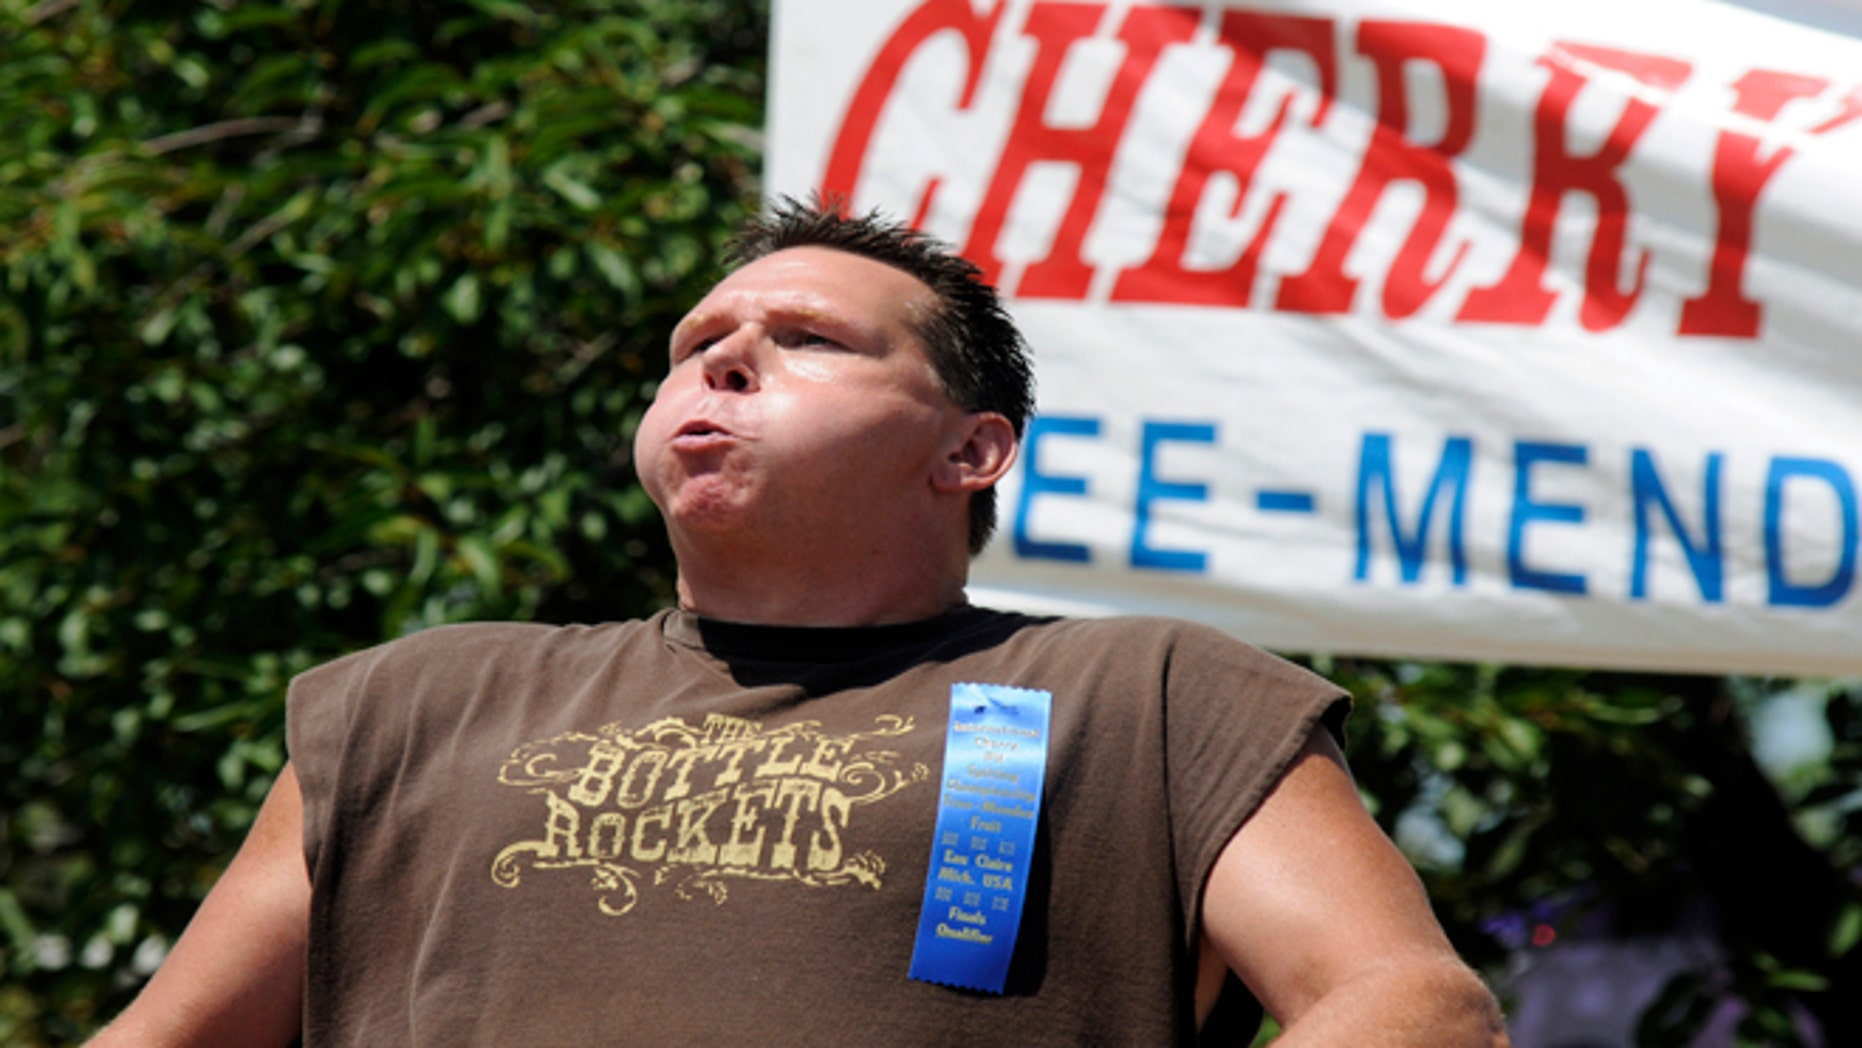 July 7, 2012: Ronn Matt places first in the championship division of the 39th annual International Cherry Pit Spitting Championship at Tree-Mendus Fruit Farm in Eau Claire, Mich.